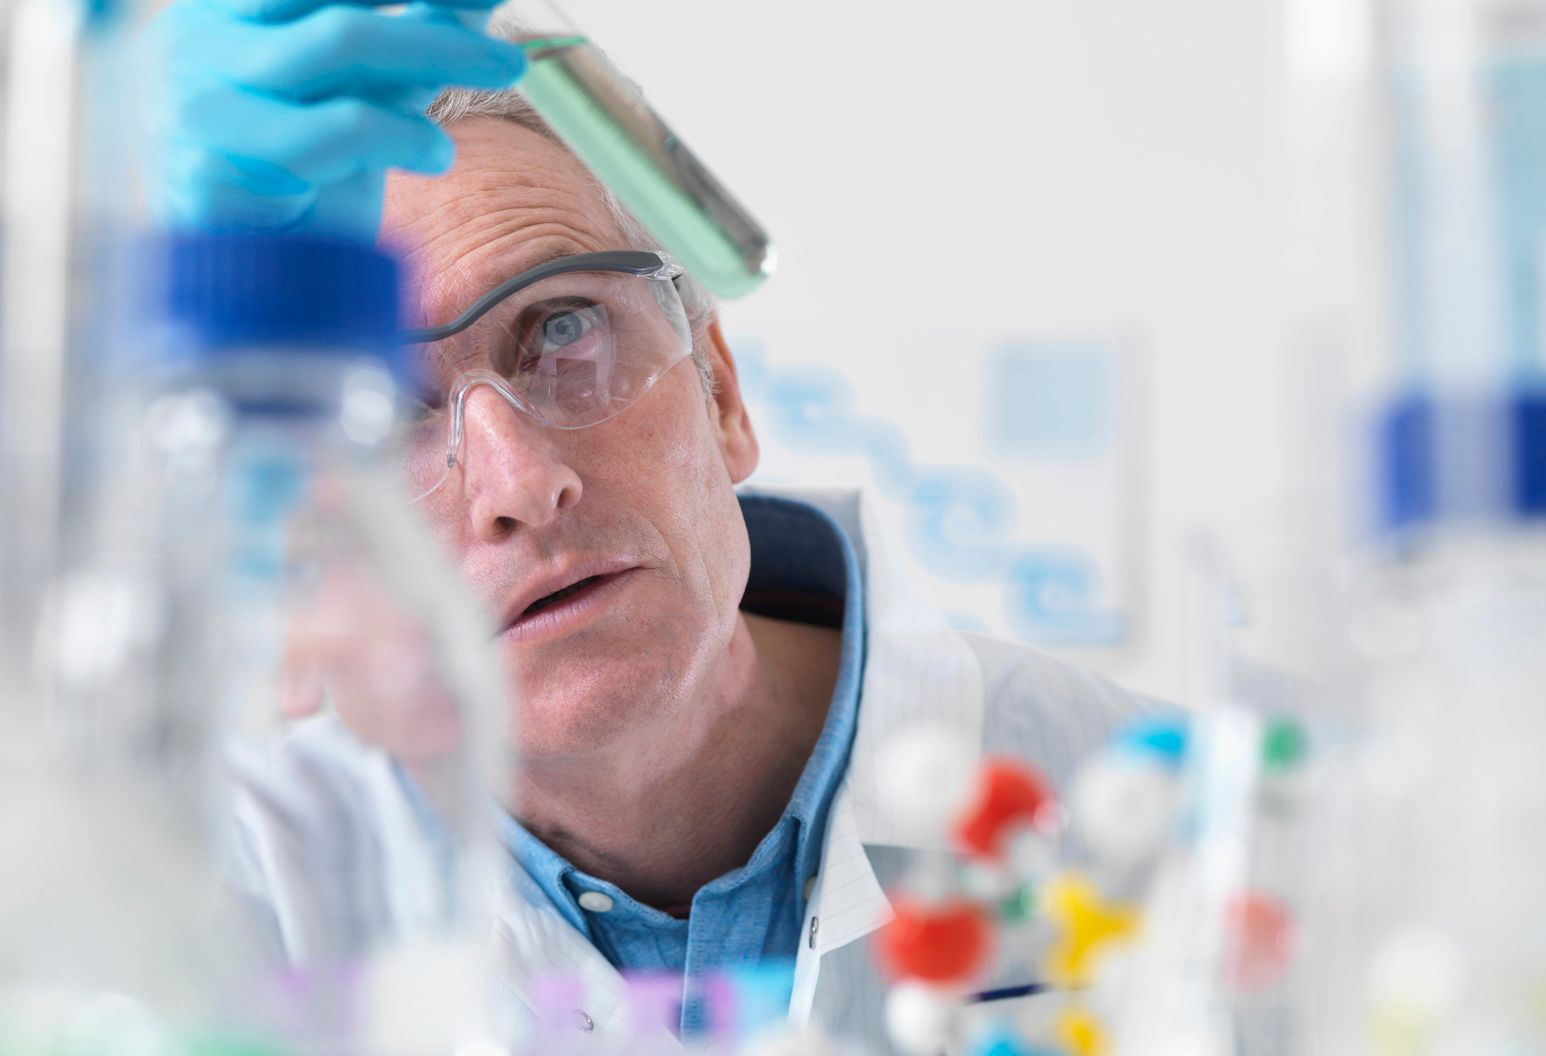 Man wearing lab coat, gloves and glasses examines a test tube with liquid in it.